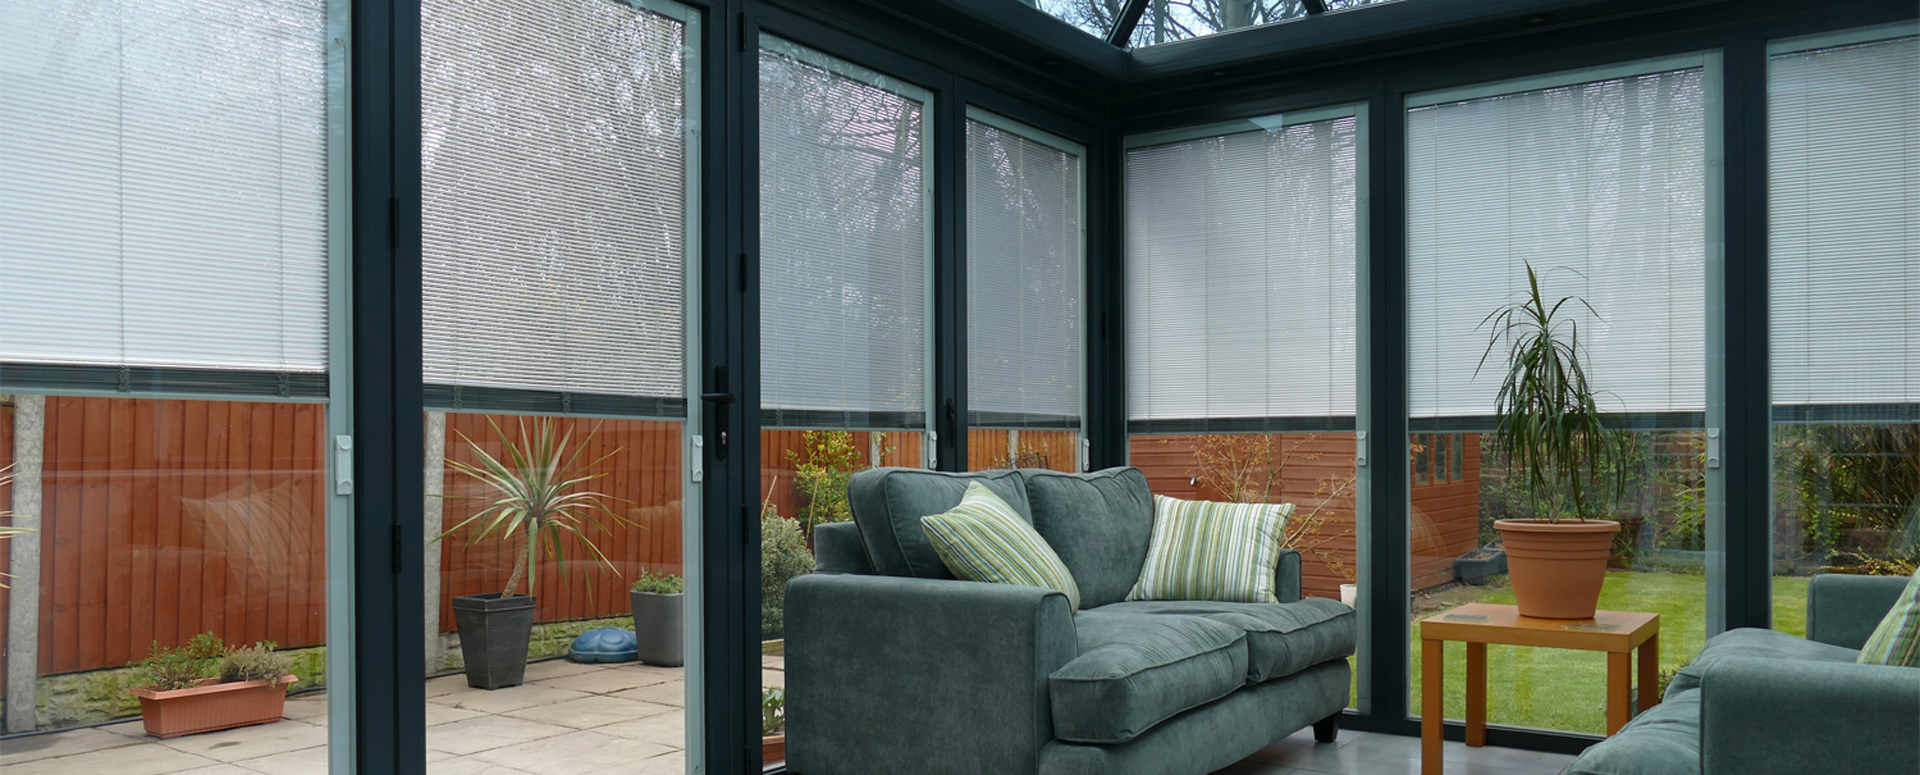 & UPVC Windows Preston | Doors Preston | Conservatories